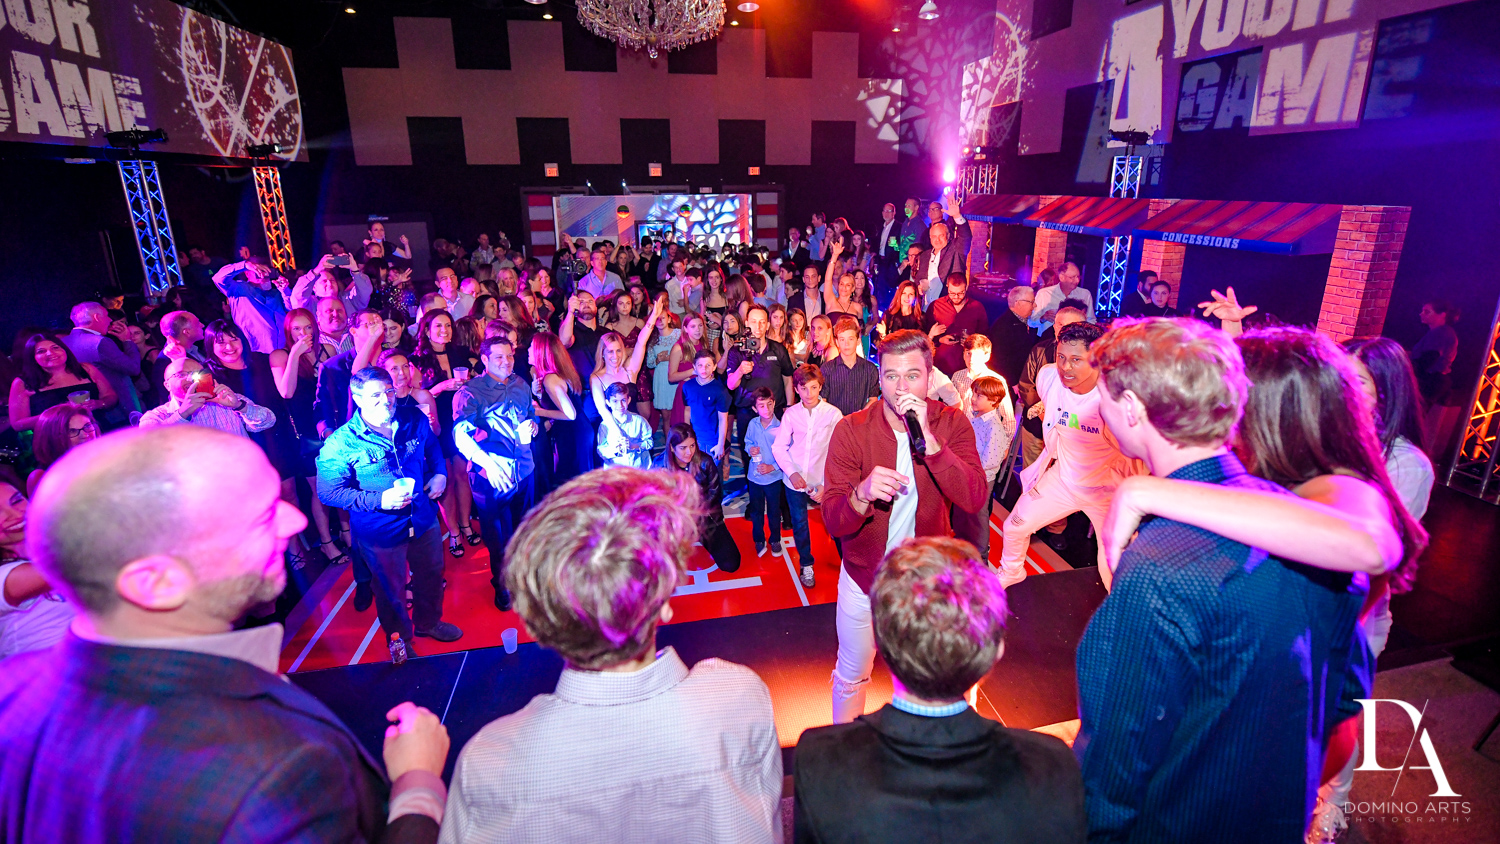 Best mitzvah entertainment at Fun Basketball Theme Bar Mitzvah at The Fillmore Miami Beach by Domino Arts Photography